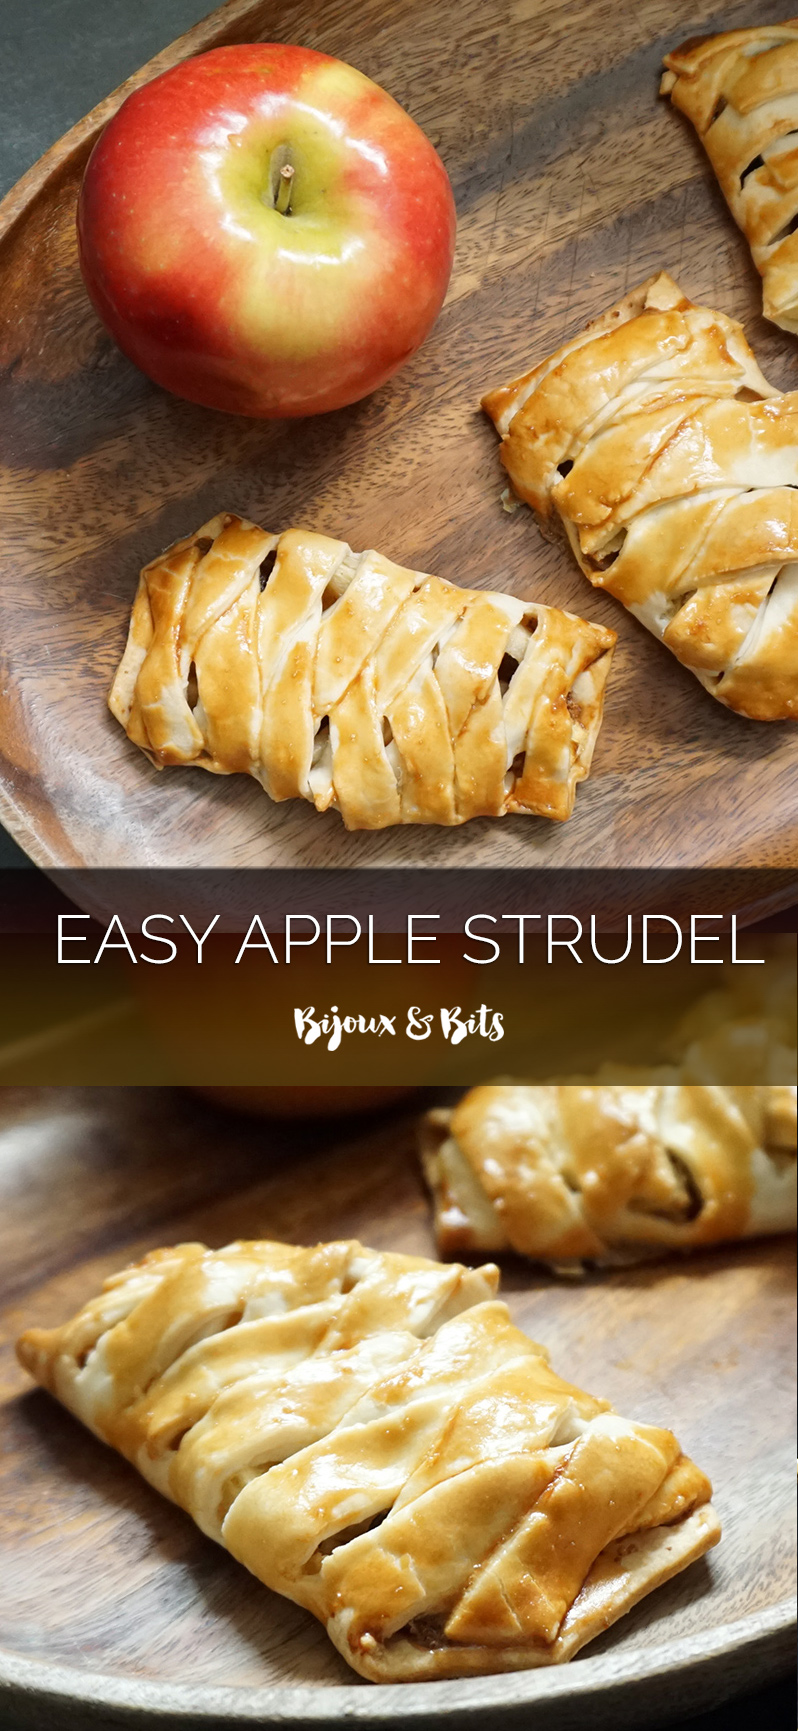 Easy apple strudel (Conjured mana strudel for Warcraft release!) from @bijouxandbits #warcraft #worldofwarcraft #applestrudel